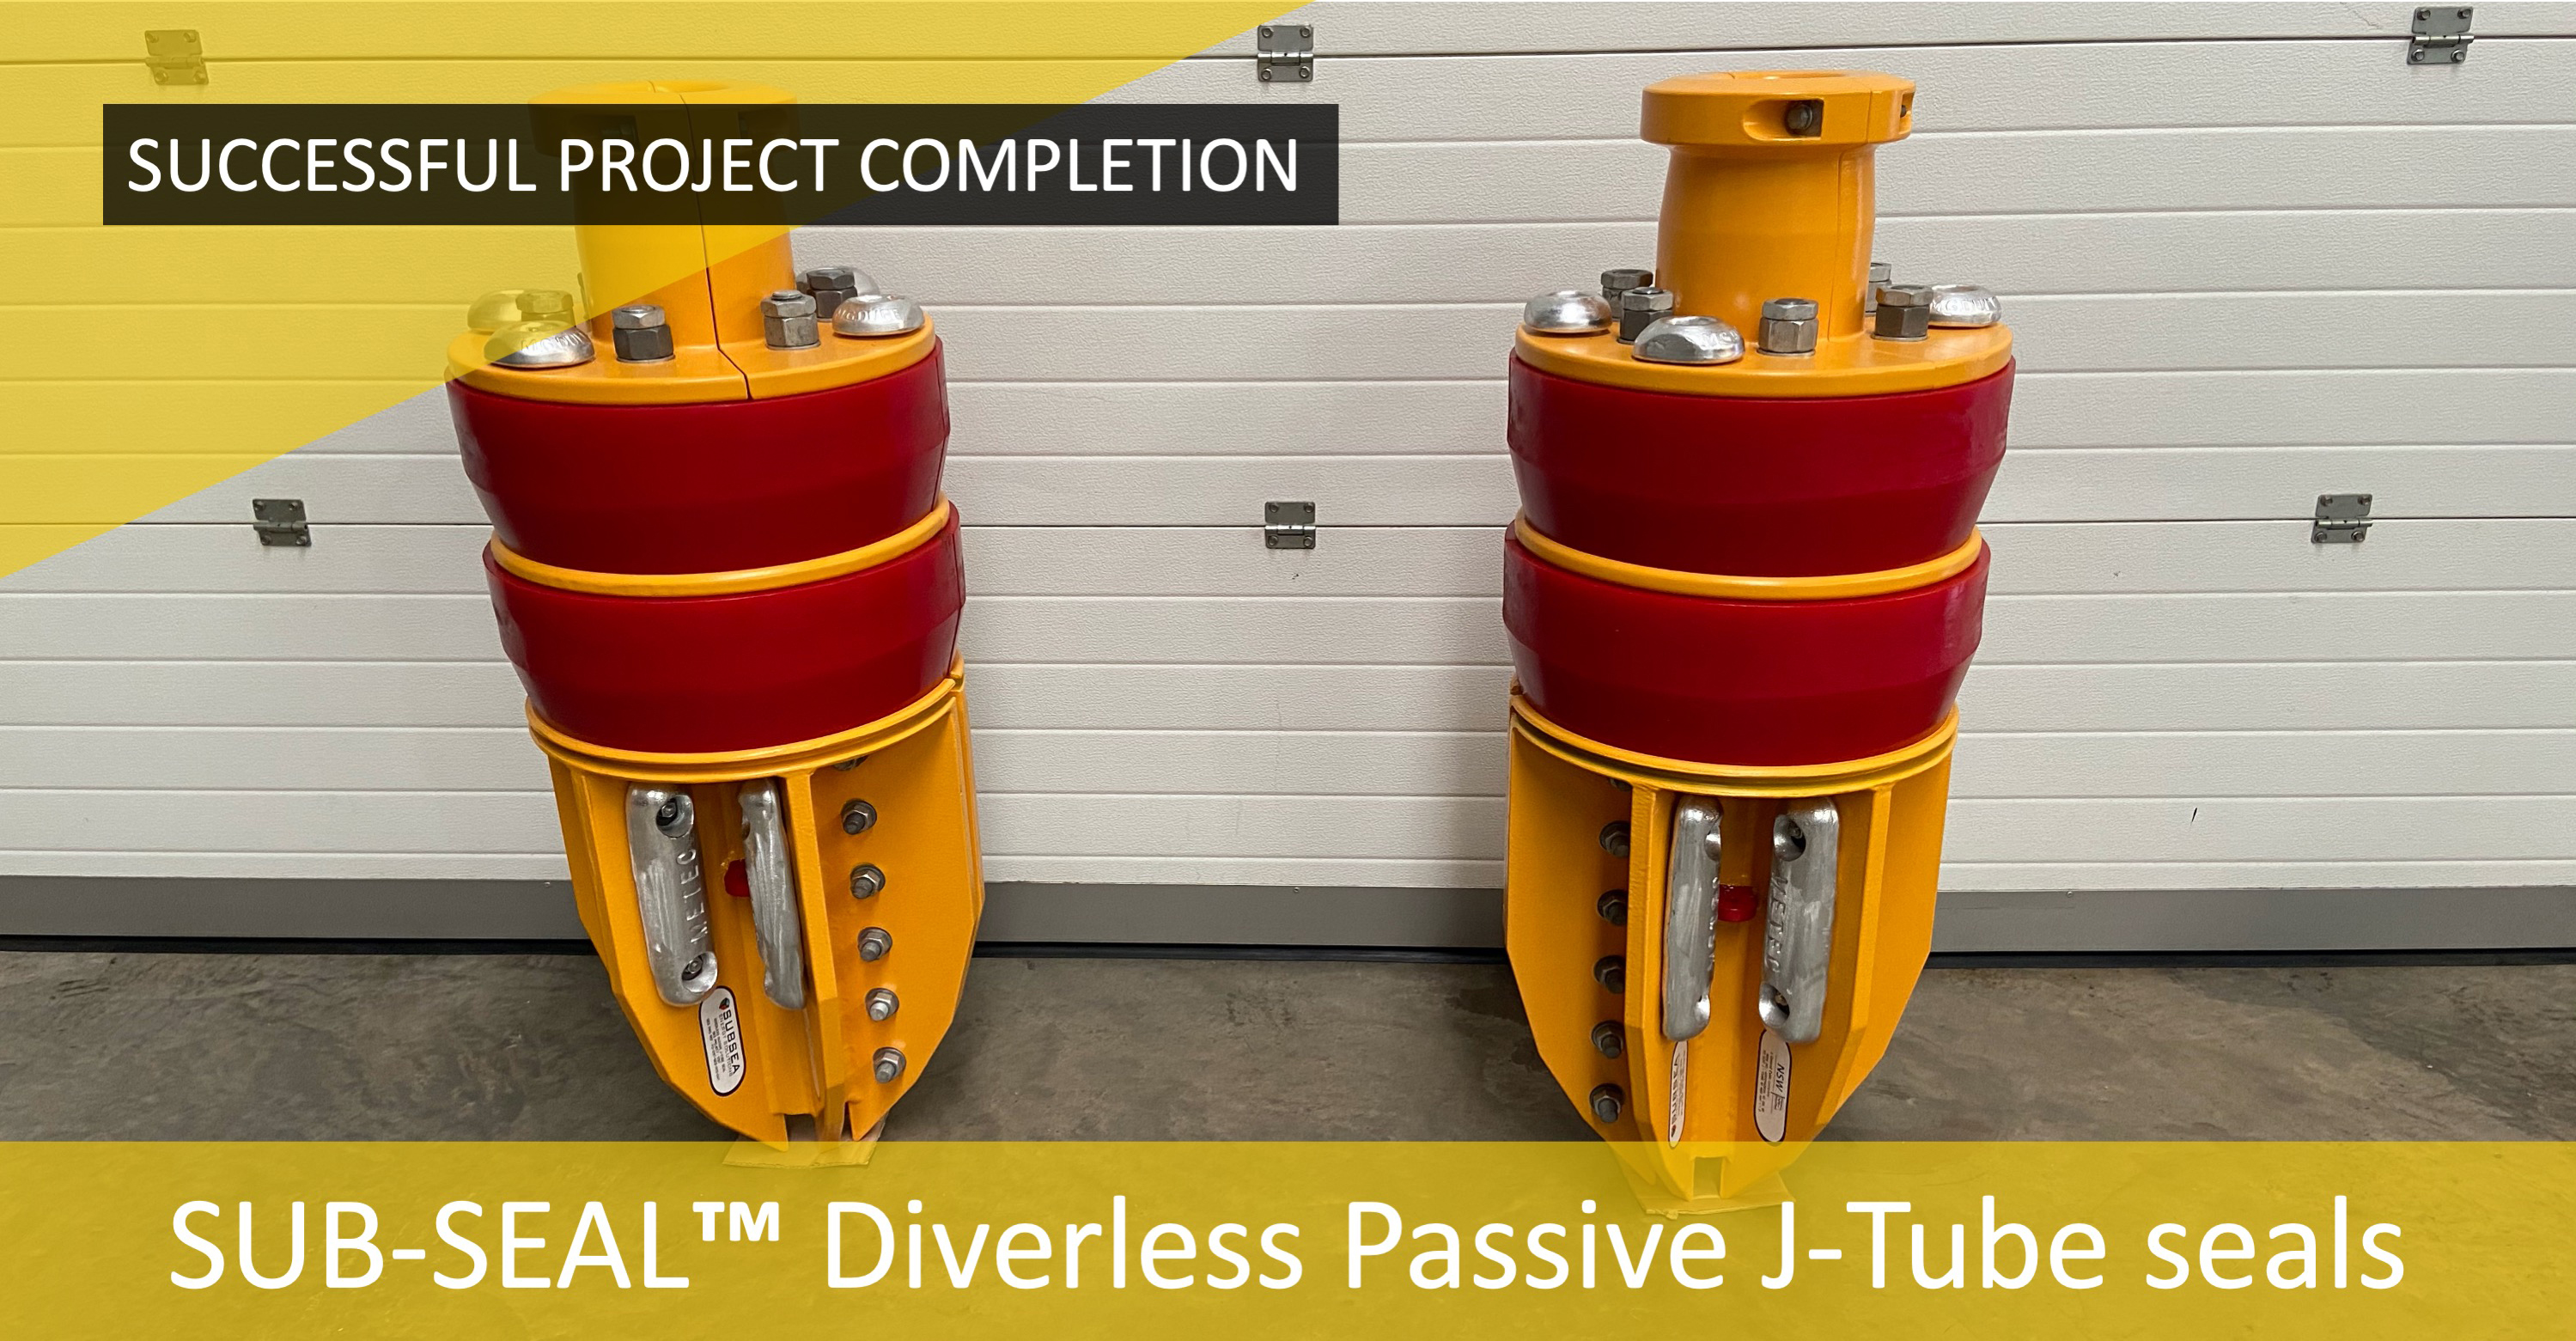 Subsea Energy Solutions (SES) delivers Diverless Passive J-Tube seals